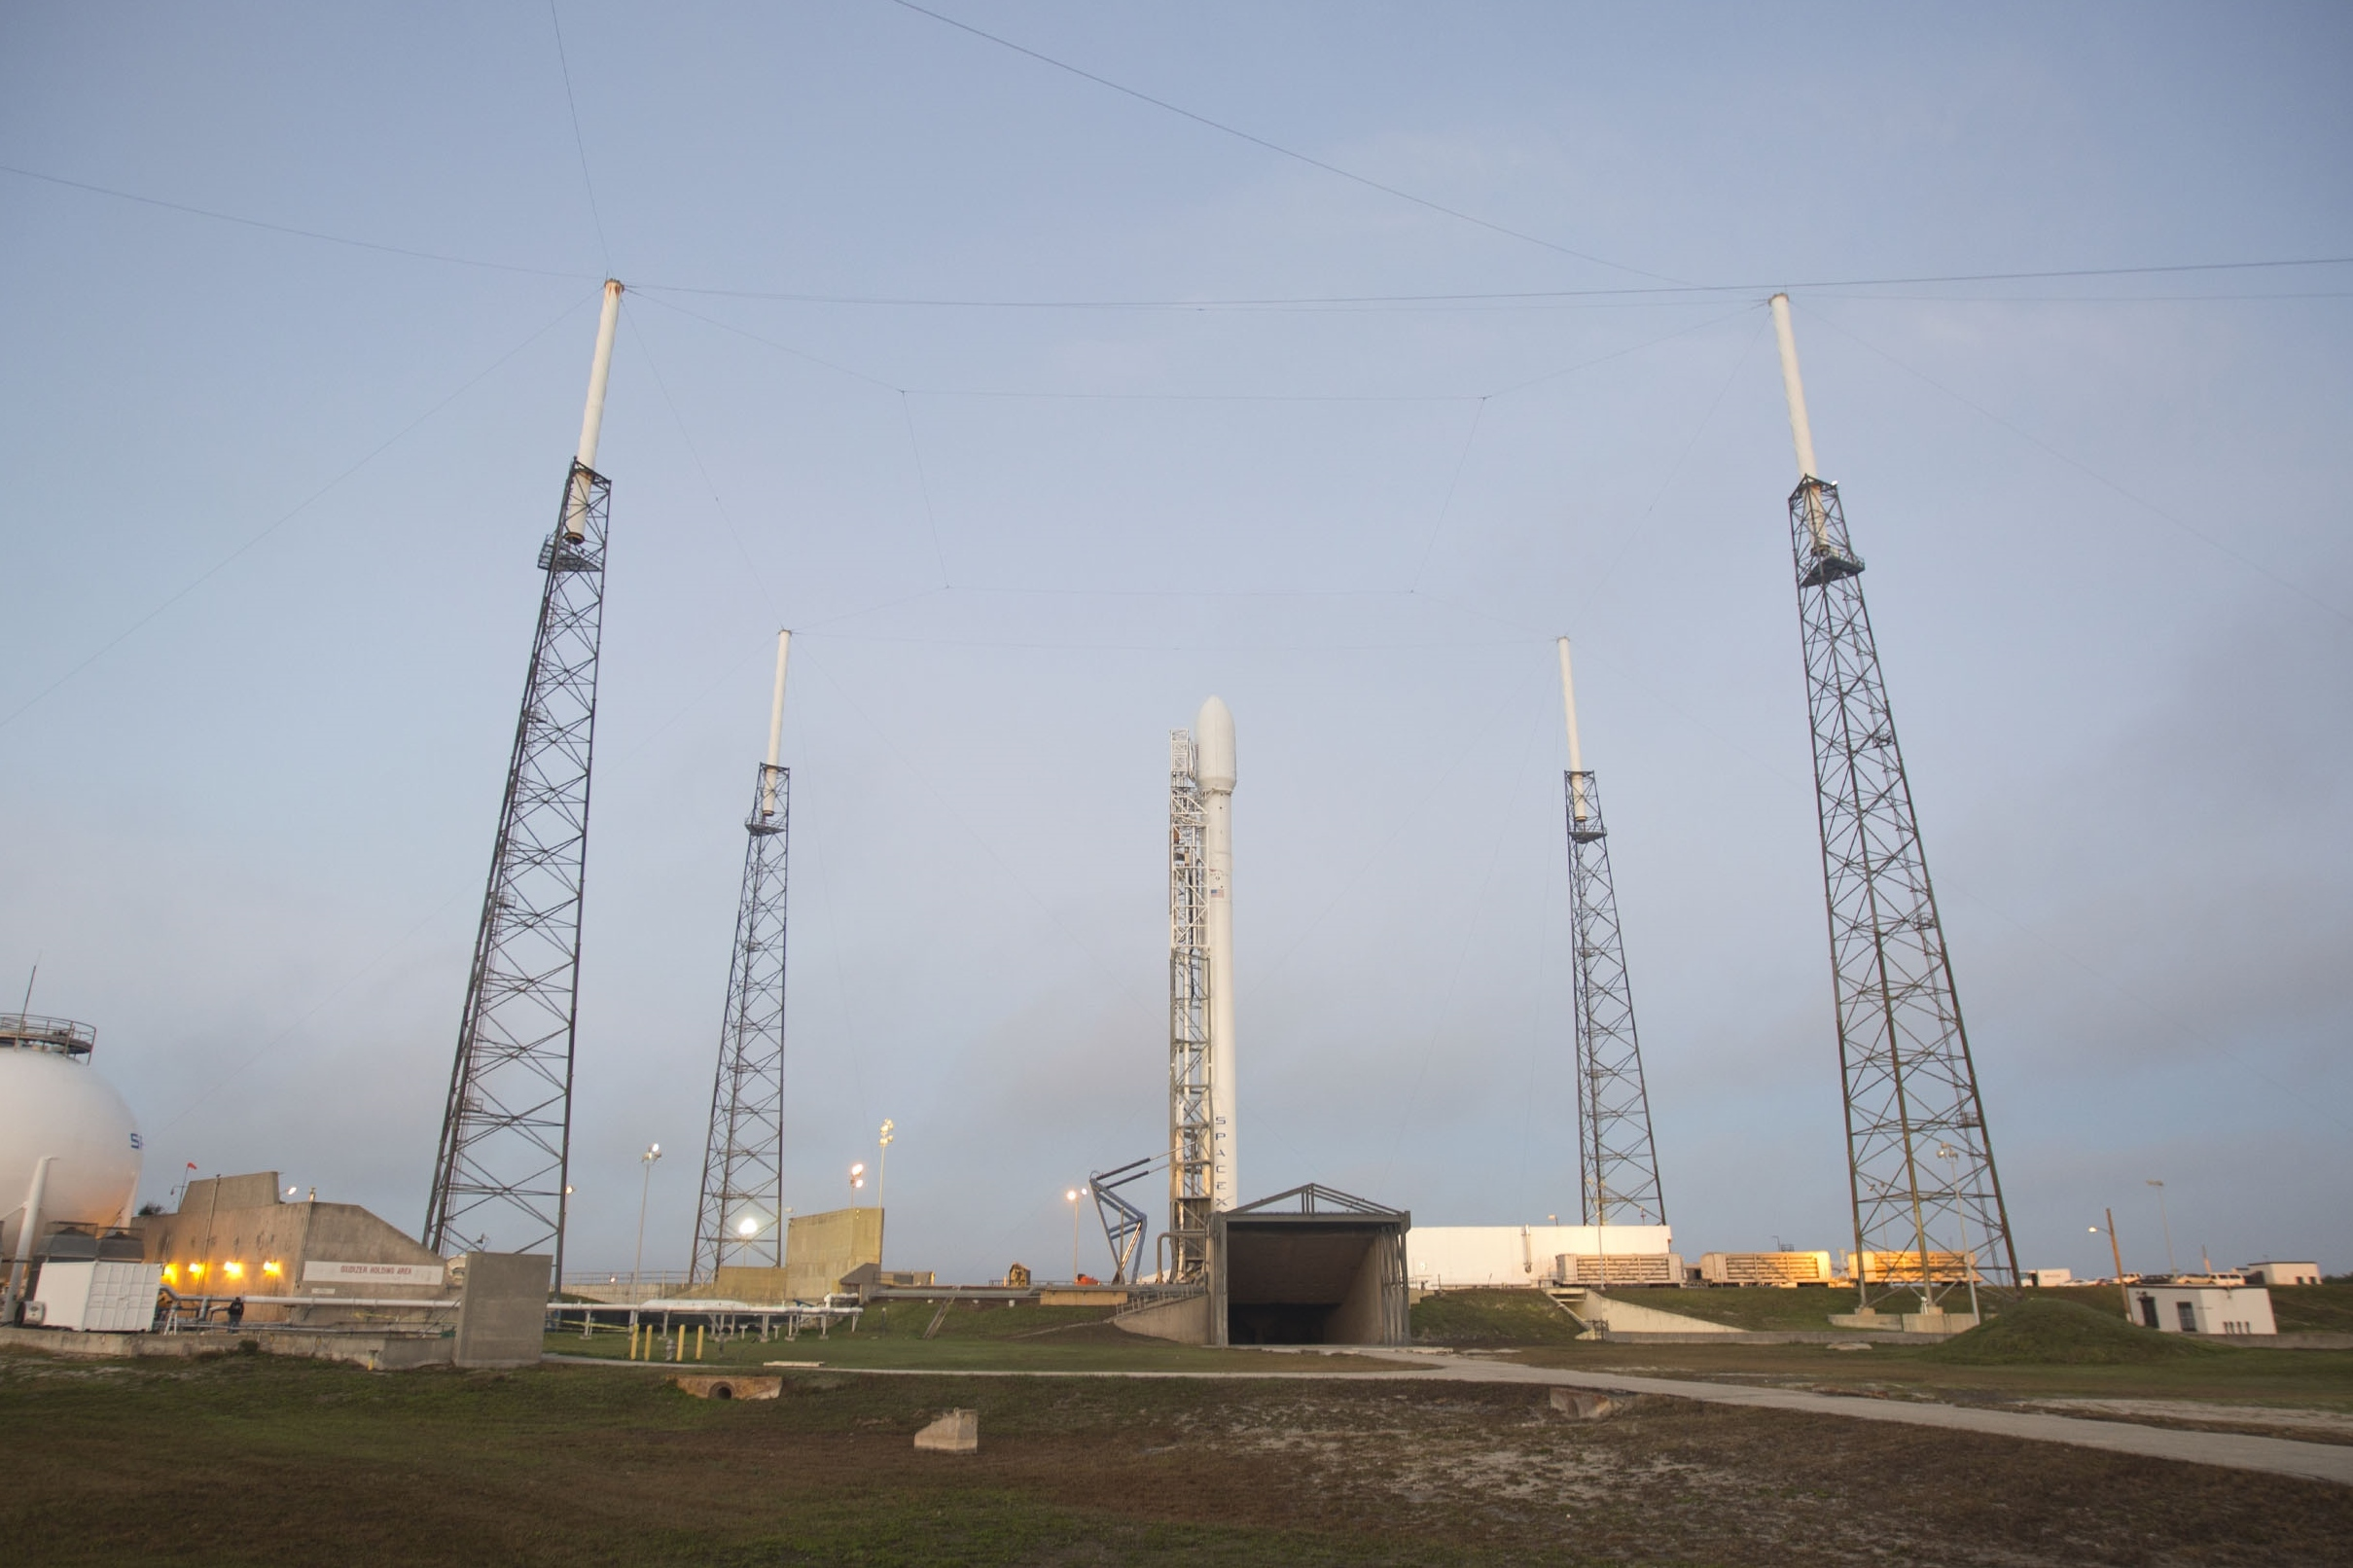 SpaceX Falcon 9 Rocket with Thaicom 6